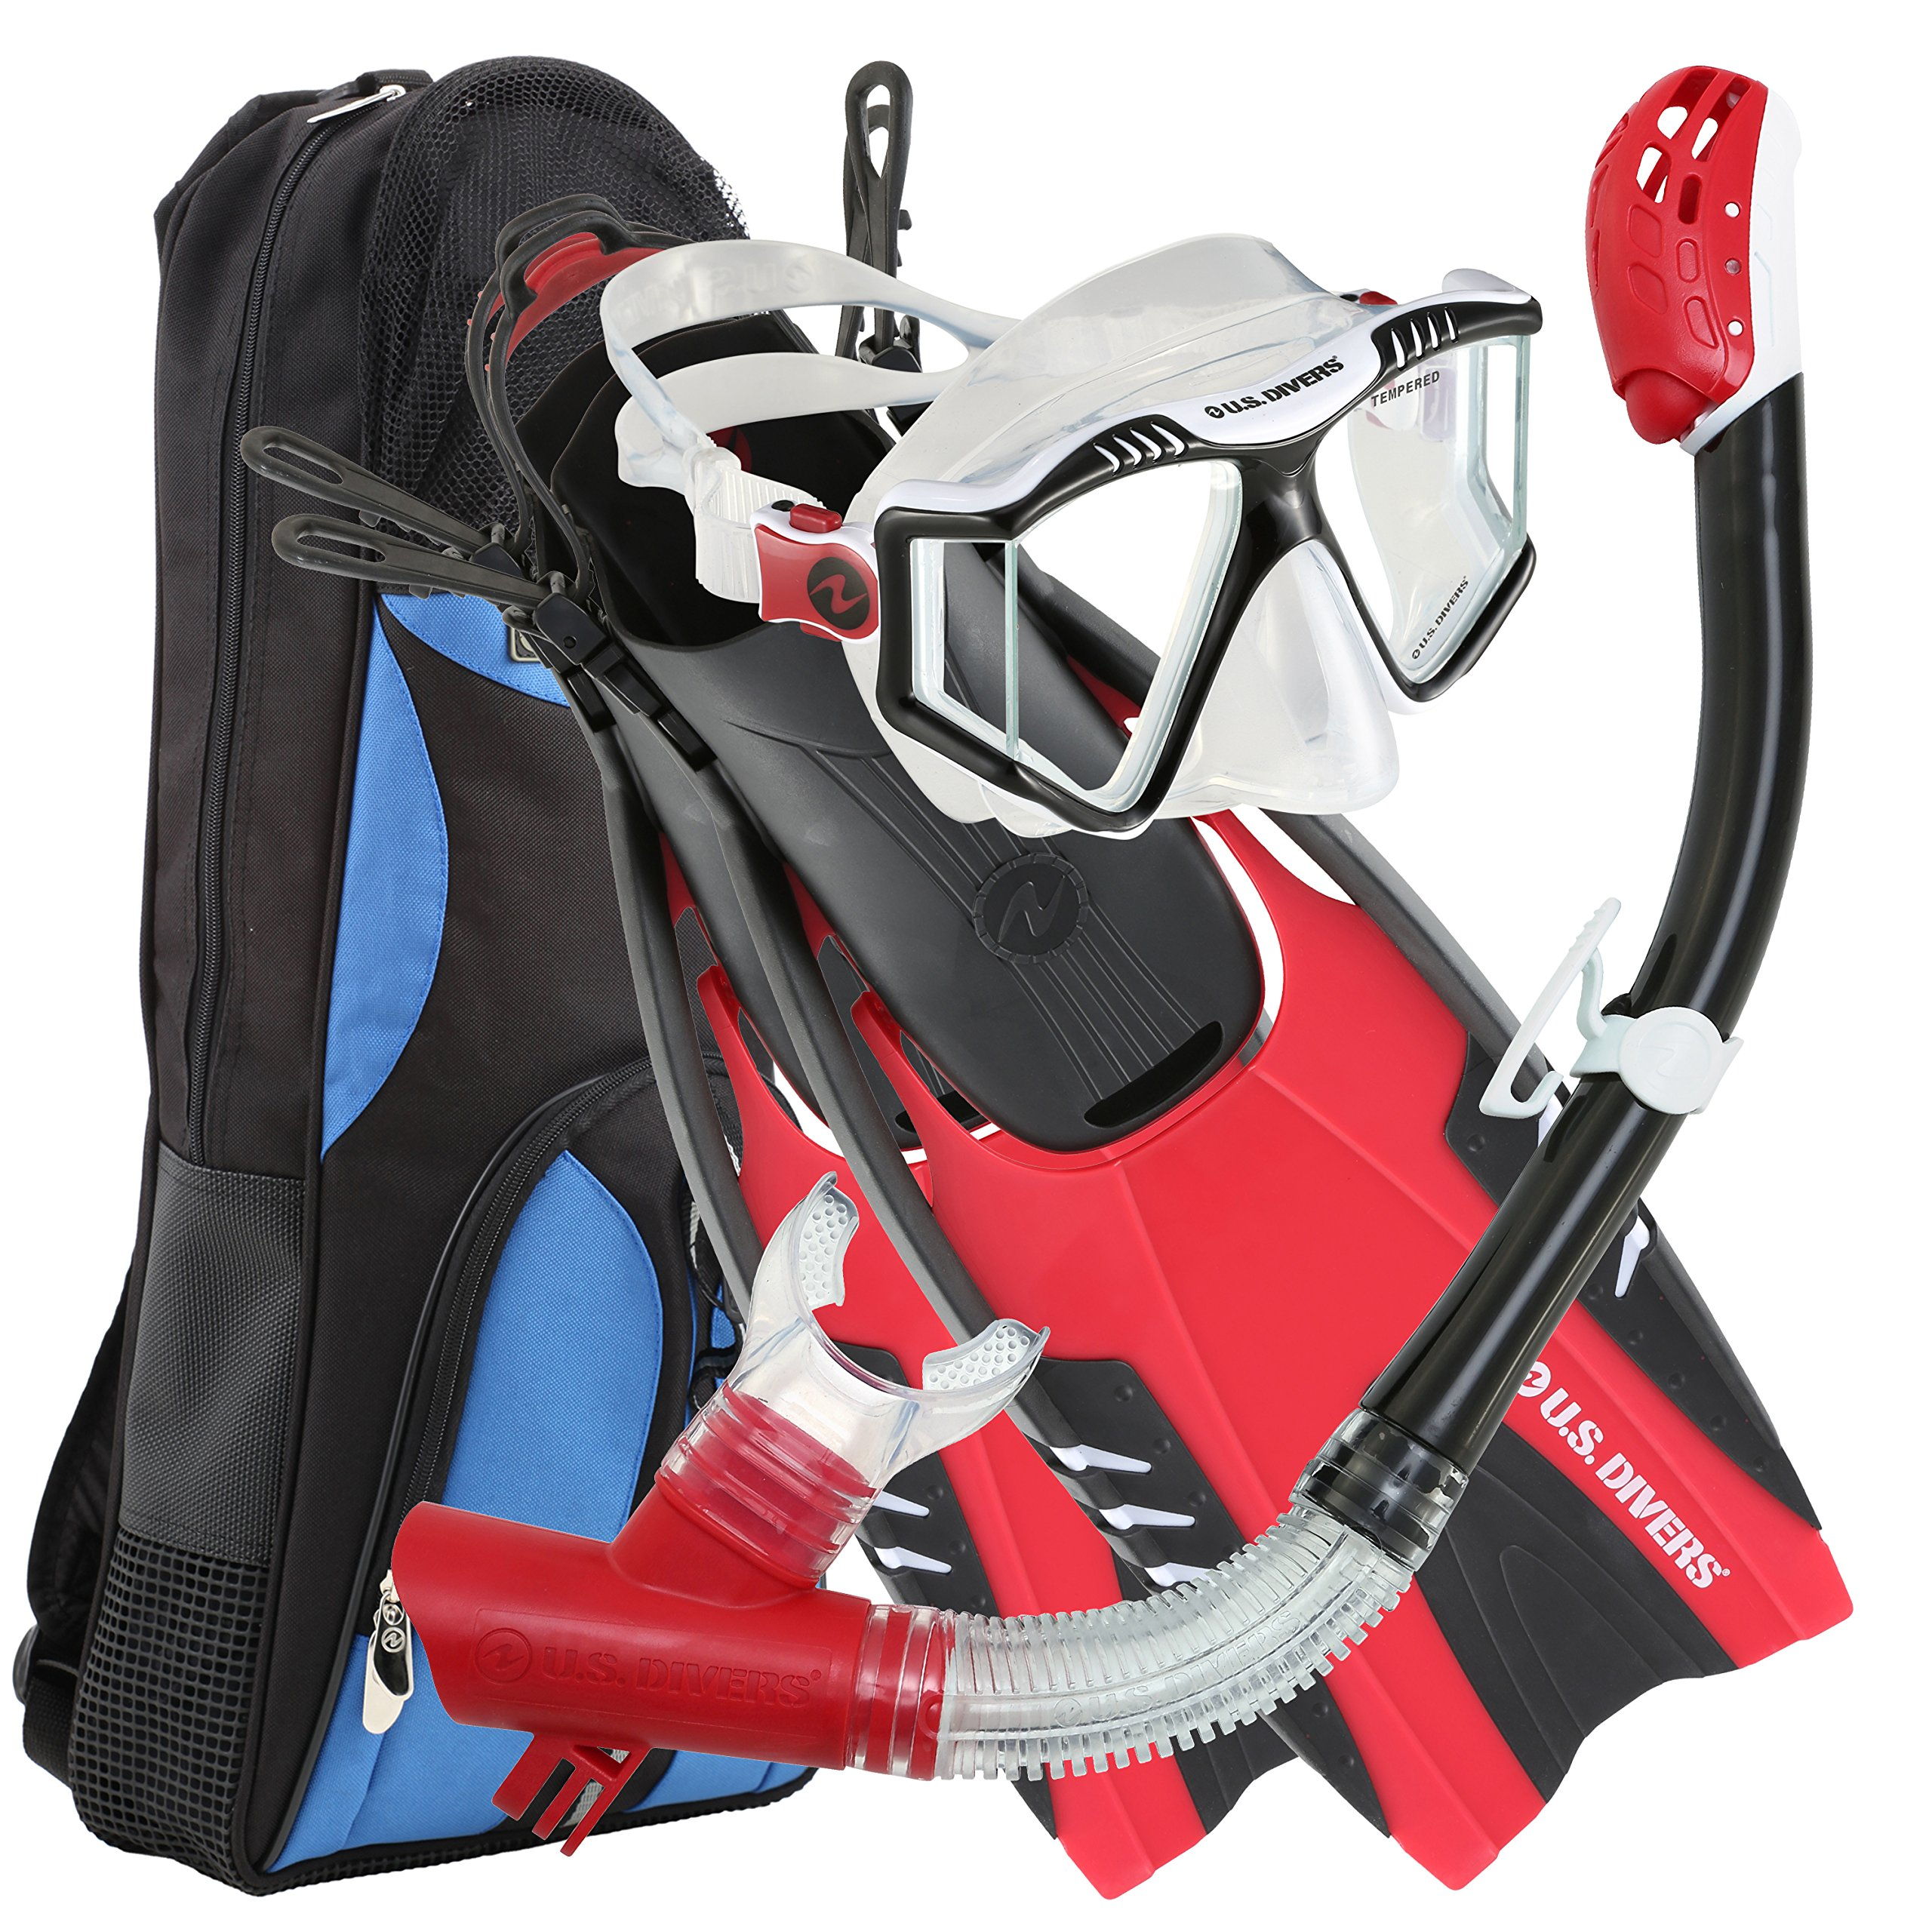 U.S. Divers Lux Platinum Snorkeling Set - Panoramic View Mask, Pivot Fins, GoPro Ready Dry Top Snorkel + Gear Bag, Black and Red L/LX by U.S. Divers